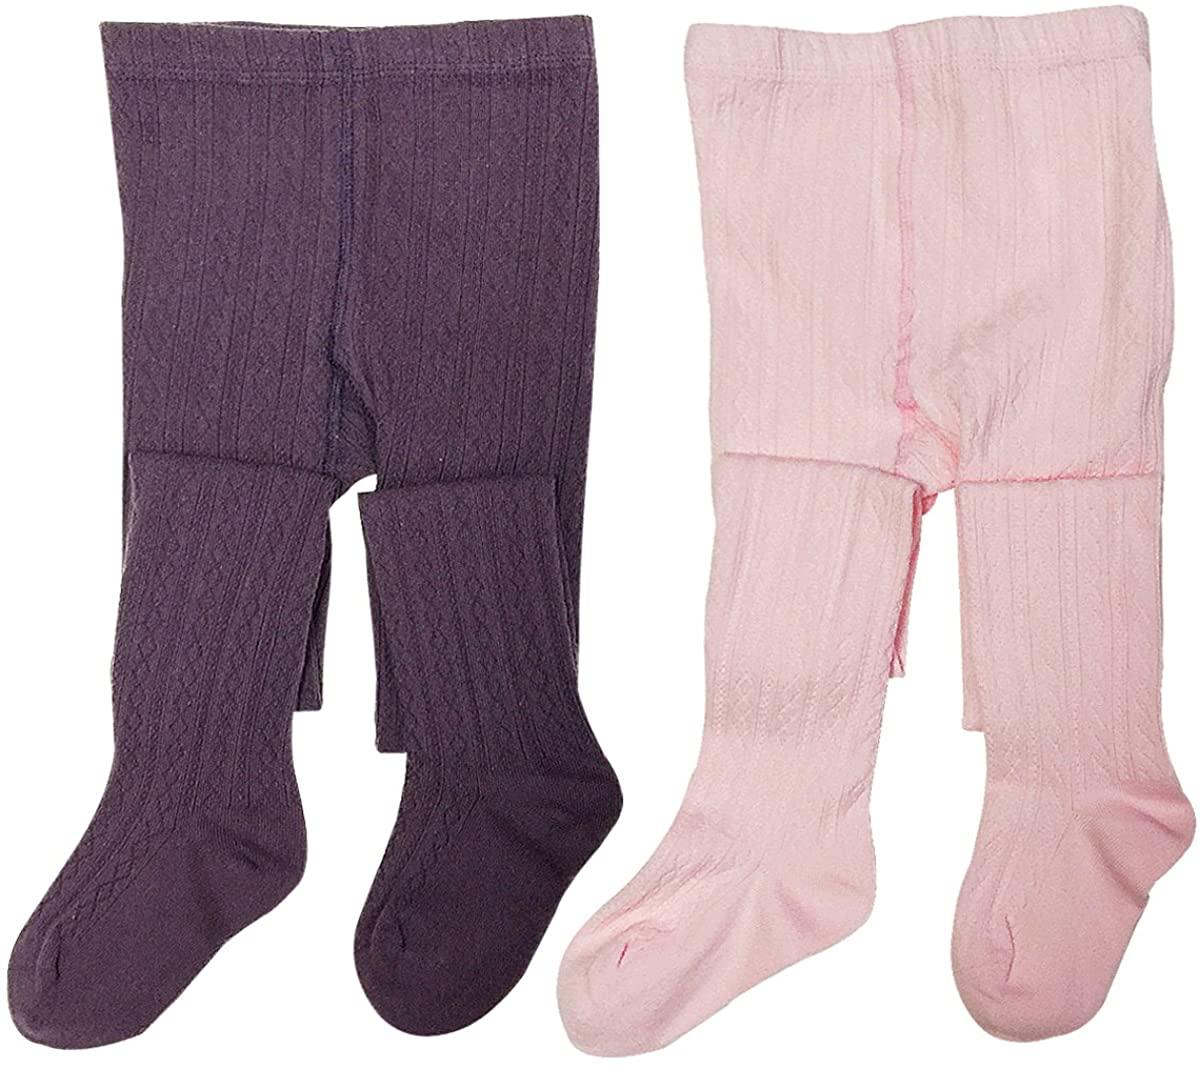 Wrapables Cotton Diamond Weave Knit Tights for Girls (Set of 2)